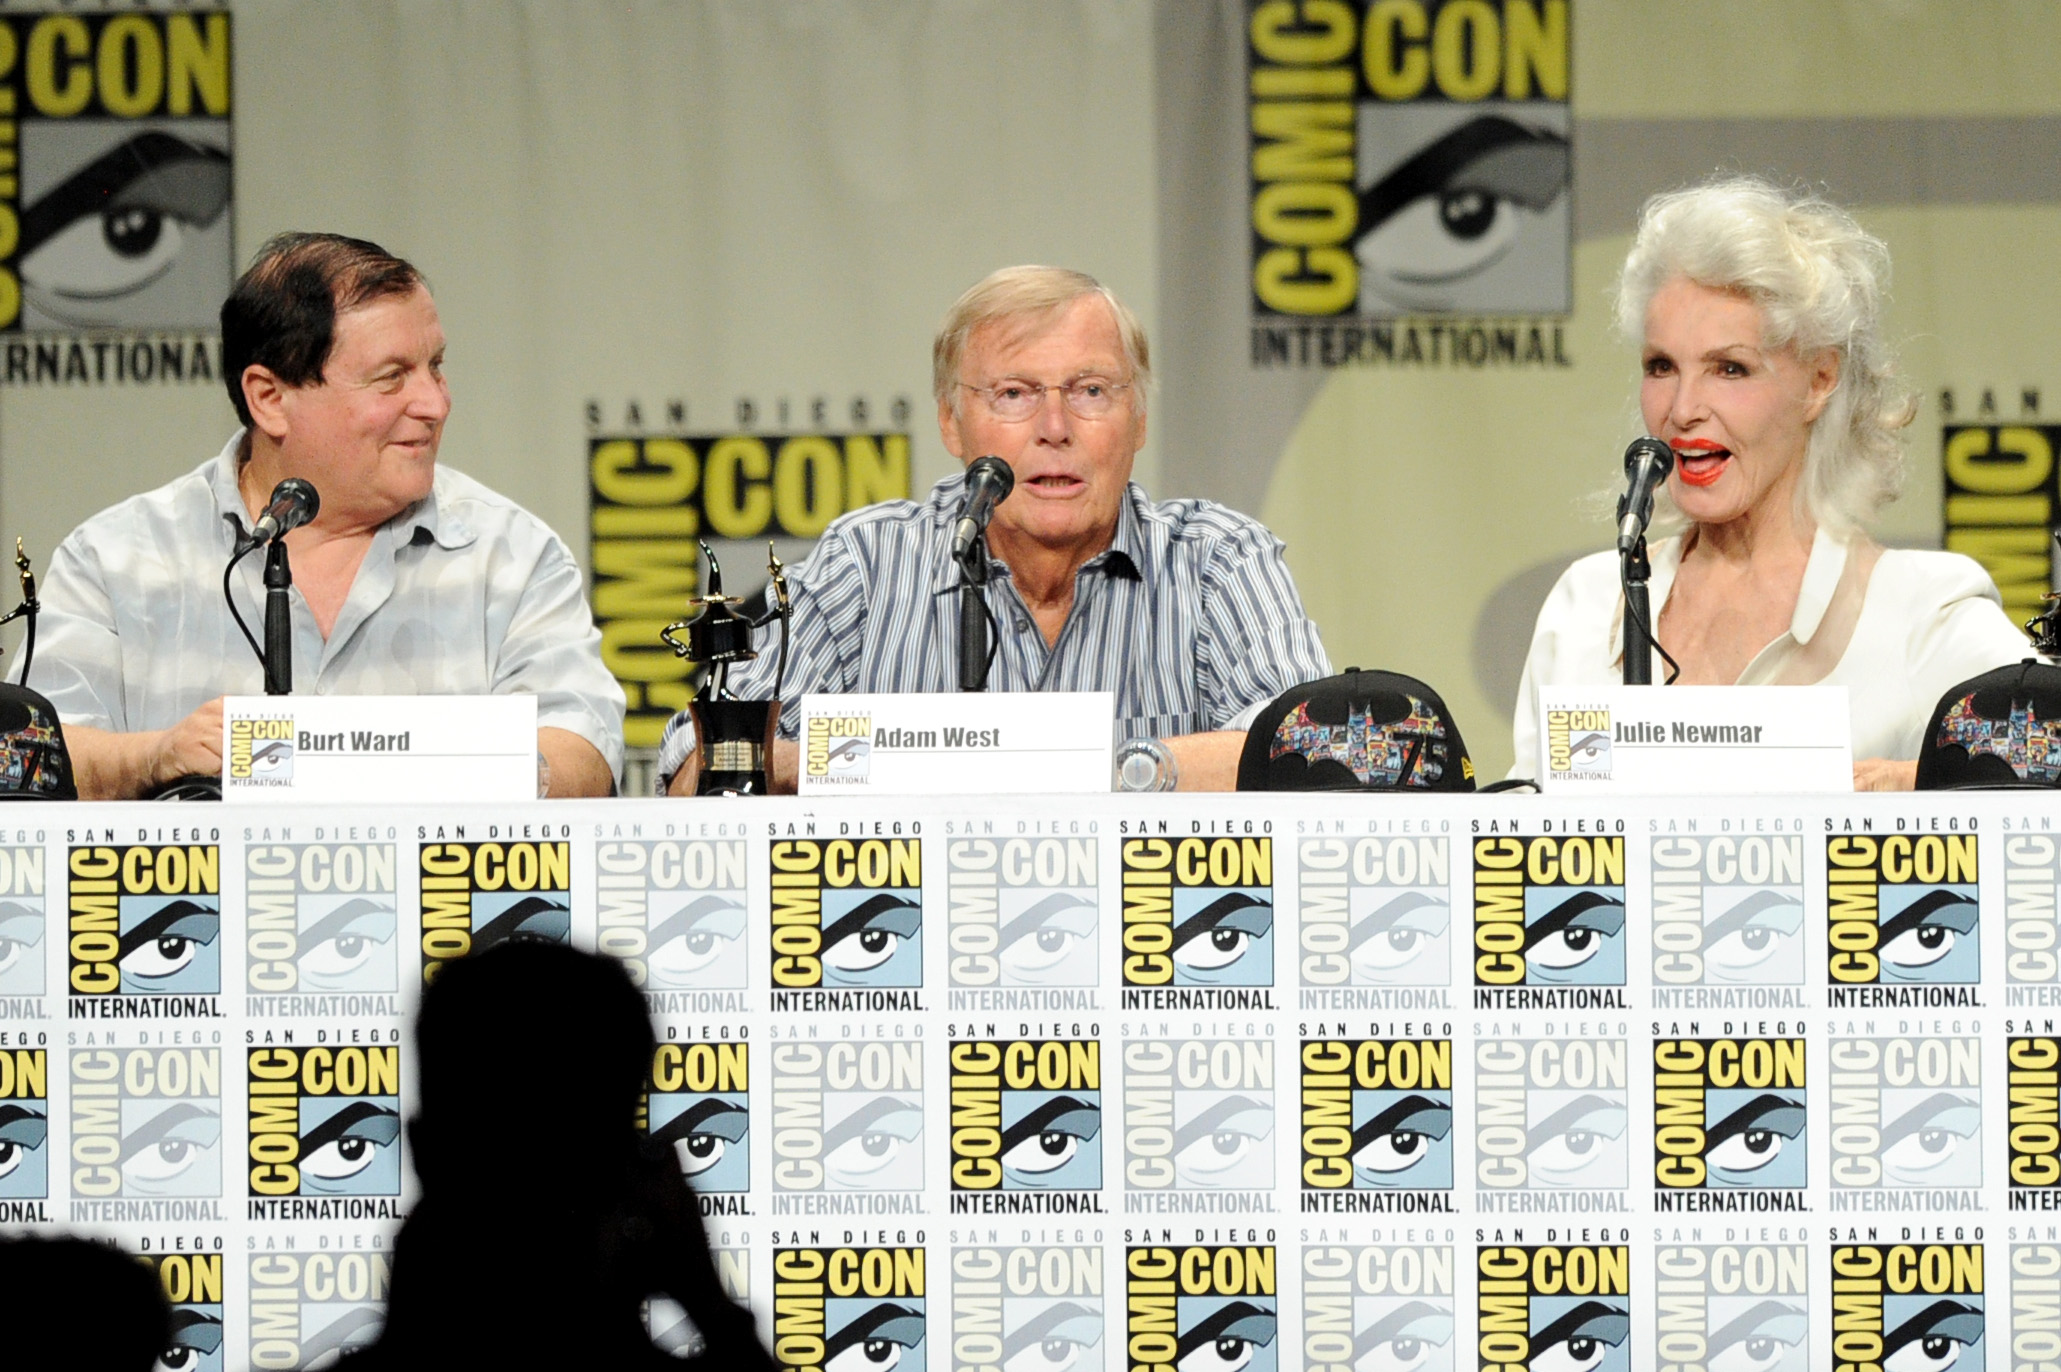 """SAN DIEGO, CA - JULY 24:  (L-R) Actors Burt Ward, Adam West and Julie Newmar attend the """"Batman: The Complete Series"""" DVD release presentation during Comic-Con International 2014 at the San Diego Convention Center on July 24, 2014 in San Diego, California.  (Photo by Kevin Winter/Getty Images)"""